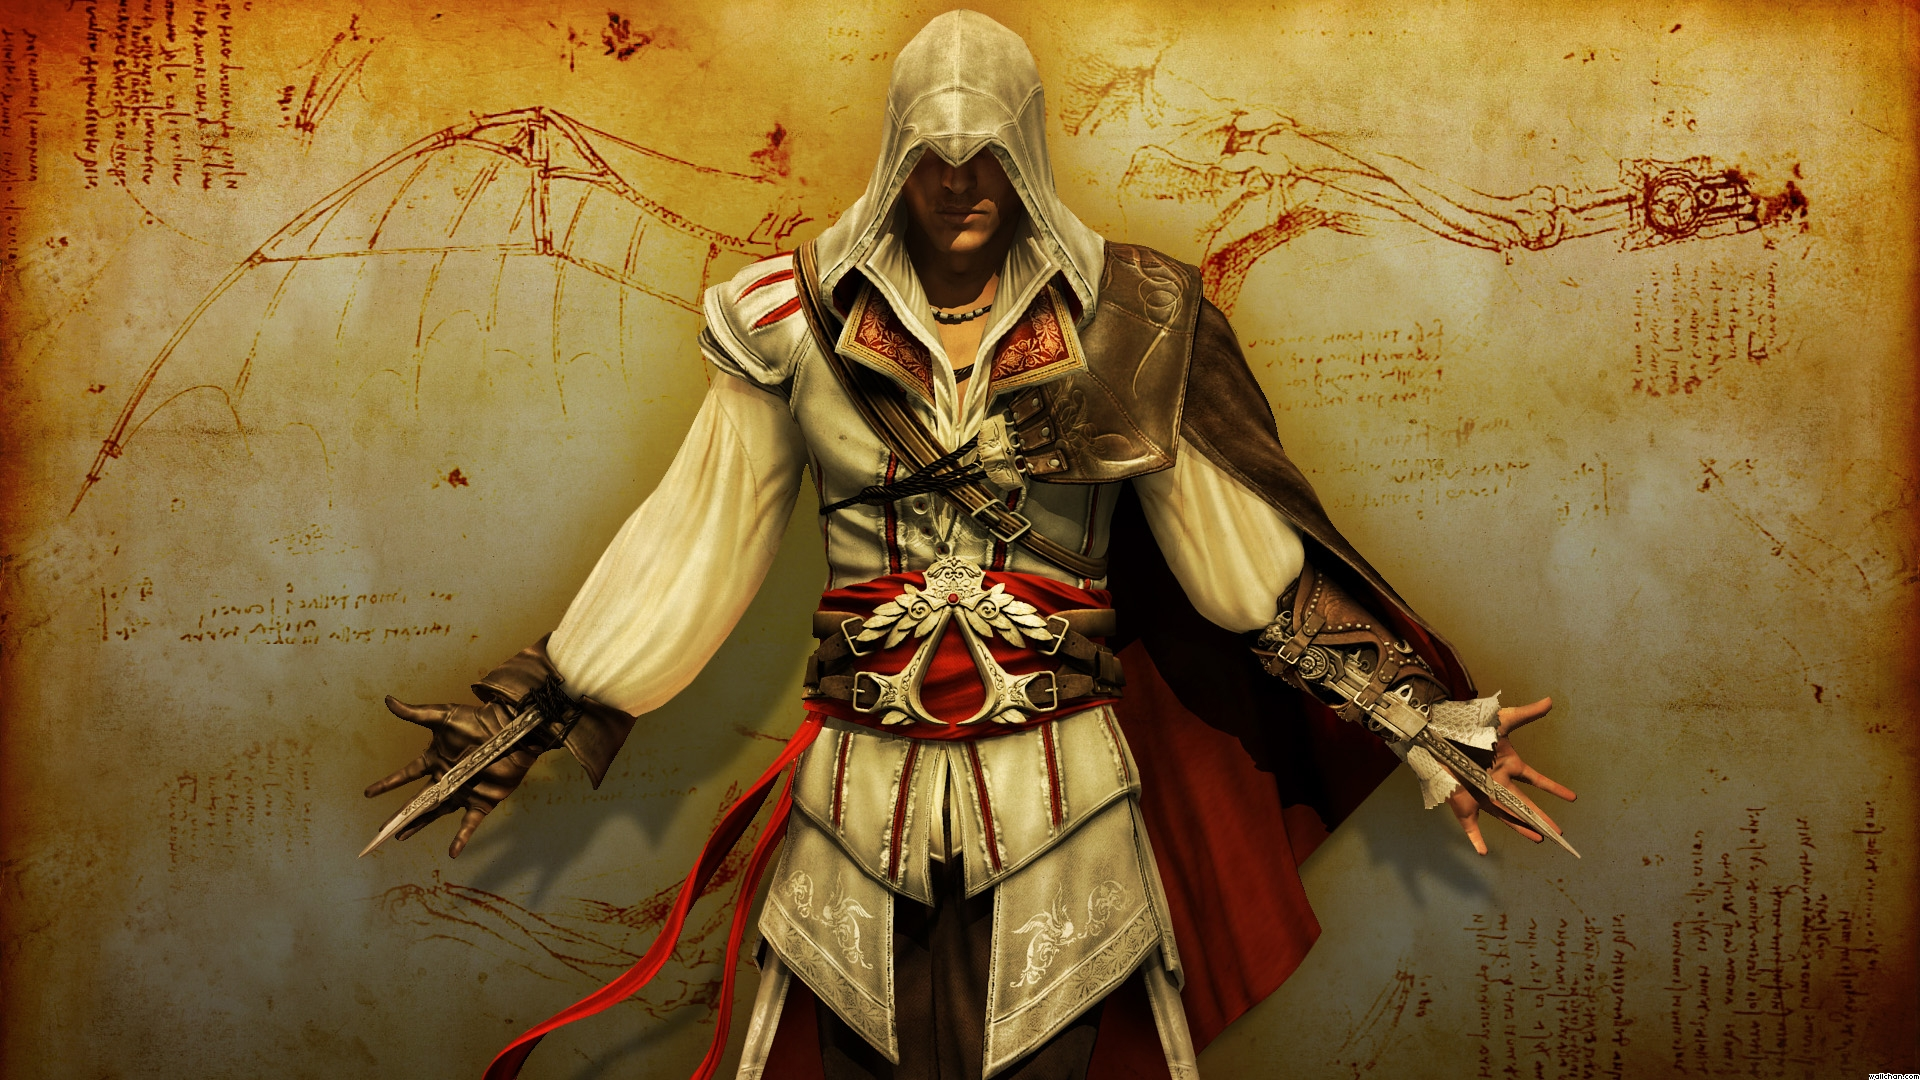 Ezio Wallpaper 1920x1080 78857